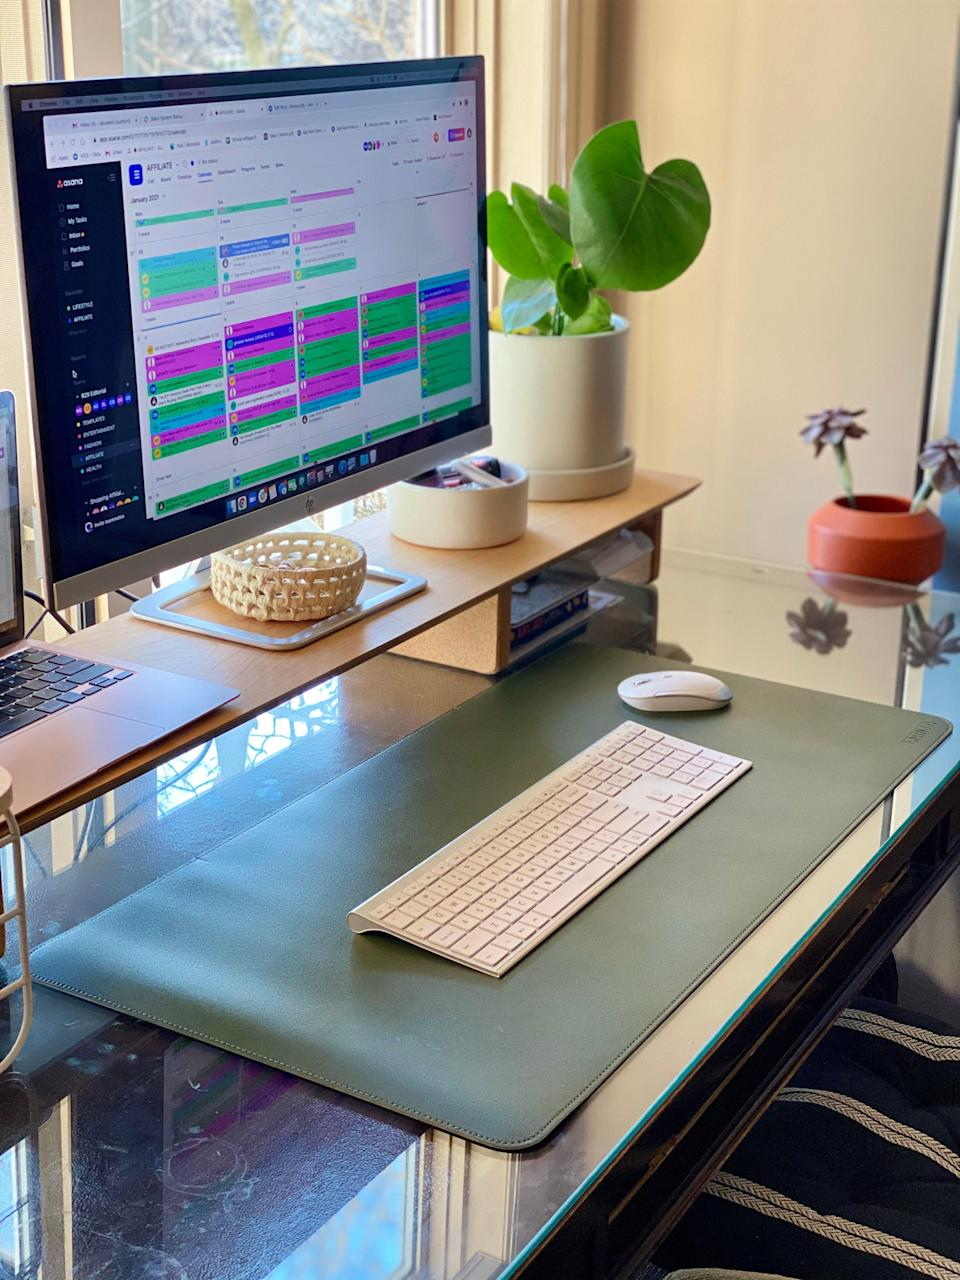 """<h2>Amazon Dual-Sided PU Leather Desk Pad</h2><br><strong>Last Month's Top MVP:</strong><br>""""If you haven't already caught my <a href=""""https://www.refinery29.com/en-us/best-desk-pads"""" rel=""""nofollow noopener"""" target=""""_blank"""" data-ylk=""""slk:dedicated review on this $17 Amazon desk pad"""" class=""""link rapid-noclick-resp"""">dedicated review on this $17 Amazon desk pad</a>, then here's the instant tea: it provided me with a sleek canvas for arranging my work stuff without much thought, acted as visual encouragement for me to keep things in place, arrived very quickly, unfurled onto my desk sans strange creases or wonky raised edges, and had a substantial weight-feel with an overall expensive-leather-like look to it."""" <em>– Elizabeth Buxton, Market Editor</em><br><br><em>Shop <strong><a href=""""https://amzn.to/35fKxnN"""" rel=""""nofollow noopener"""" target=""""_blank"""" data-ylk=""""slk:Amazon"""" class=""""link rapid-noclick-resp"""">Amazon</a></strong></em><br><br><strong>EMINTA</strong> Dual-Sided PU Leather Desk Pad, $, available at <a href=""""https://amzn.to/3anwFvb"""" rel=""""nofollow noopener"""" target=""""_blank"""" data-ylk=""""slk:Amazon"""" class=""""link rapid-noclick-resp"""">Amazon</a>"""